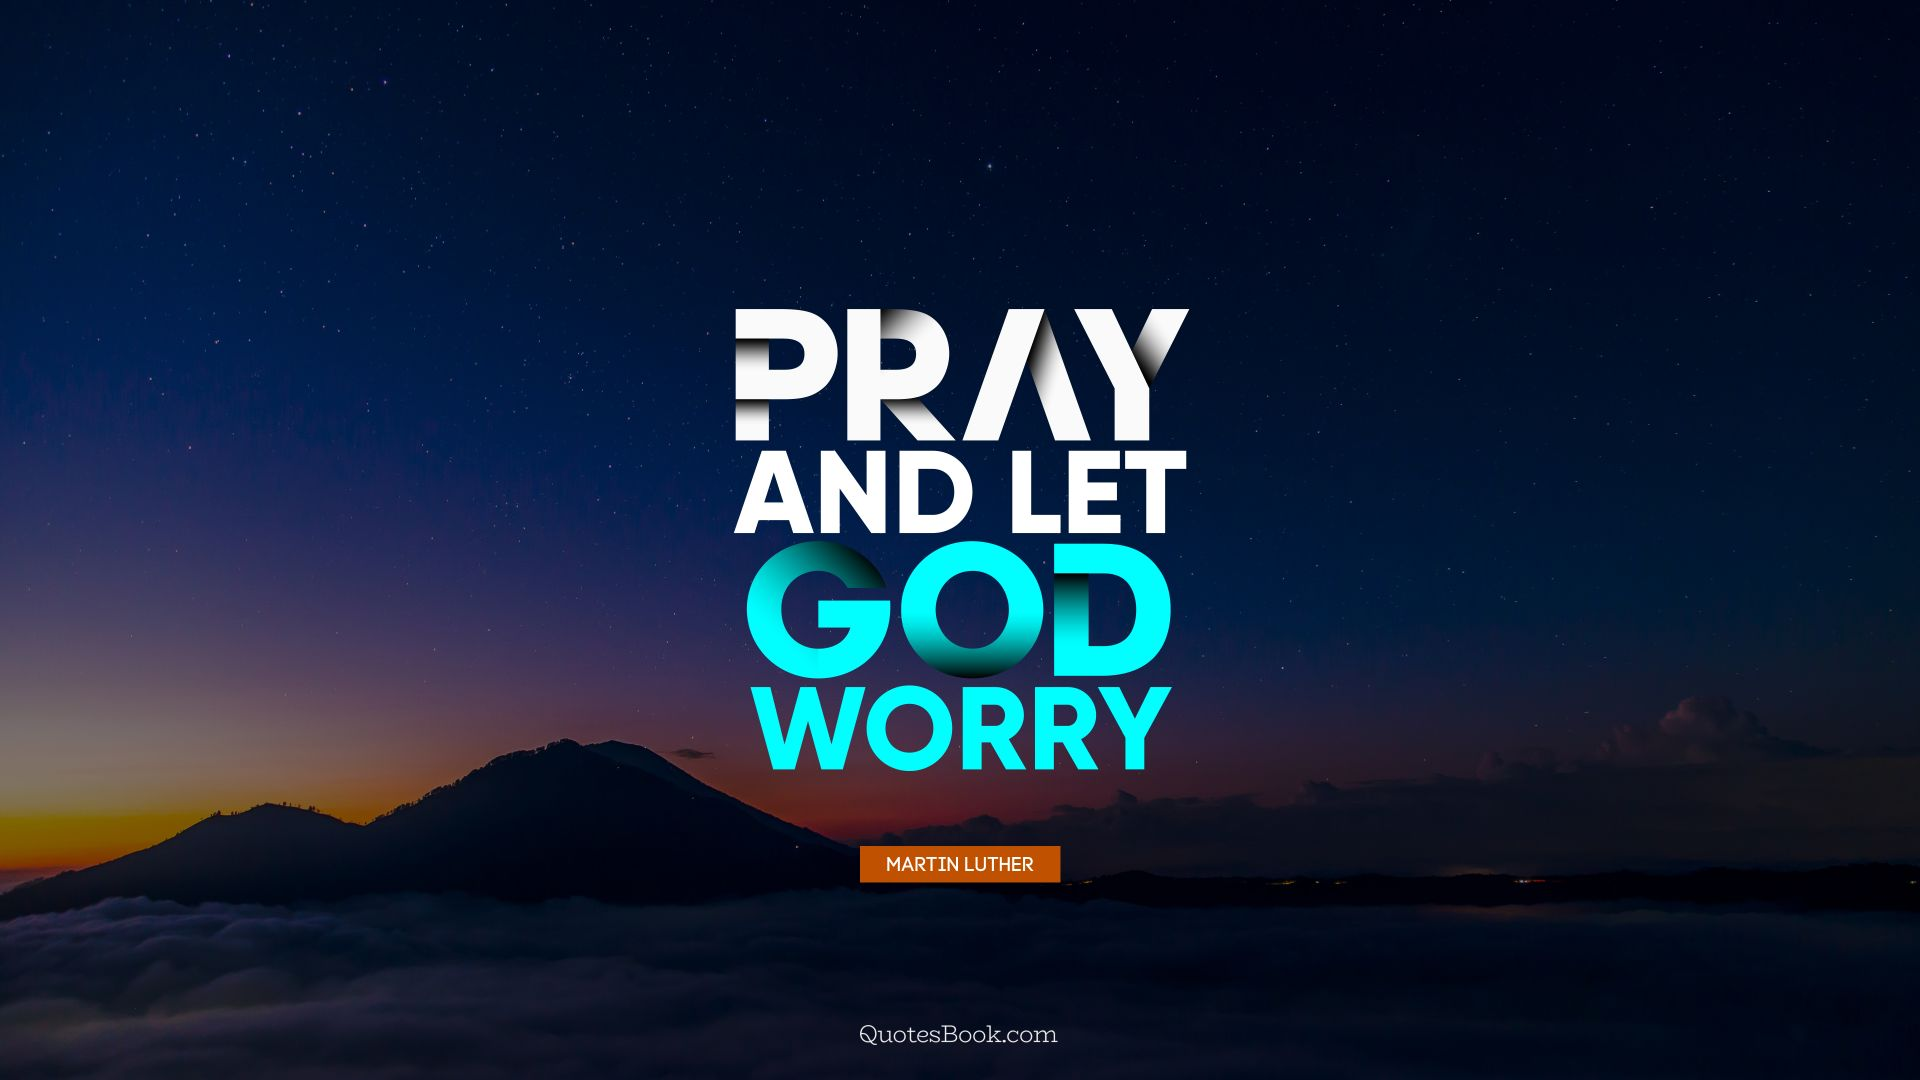 Pray, and let God worry. - Quote by Martin Luther